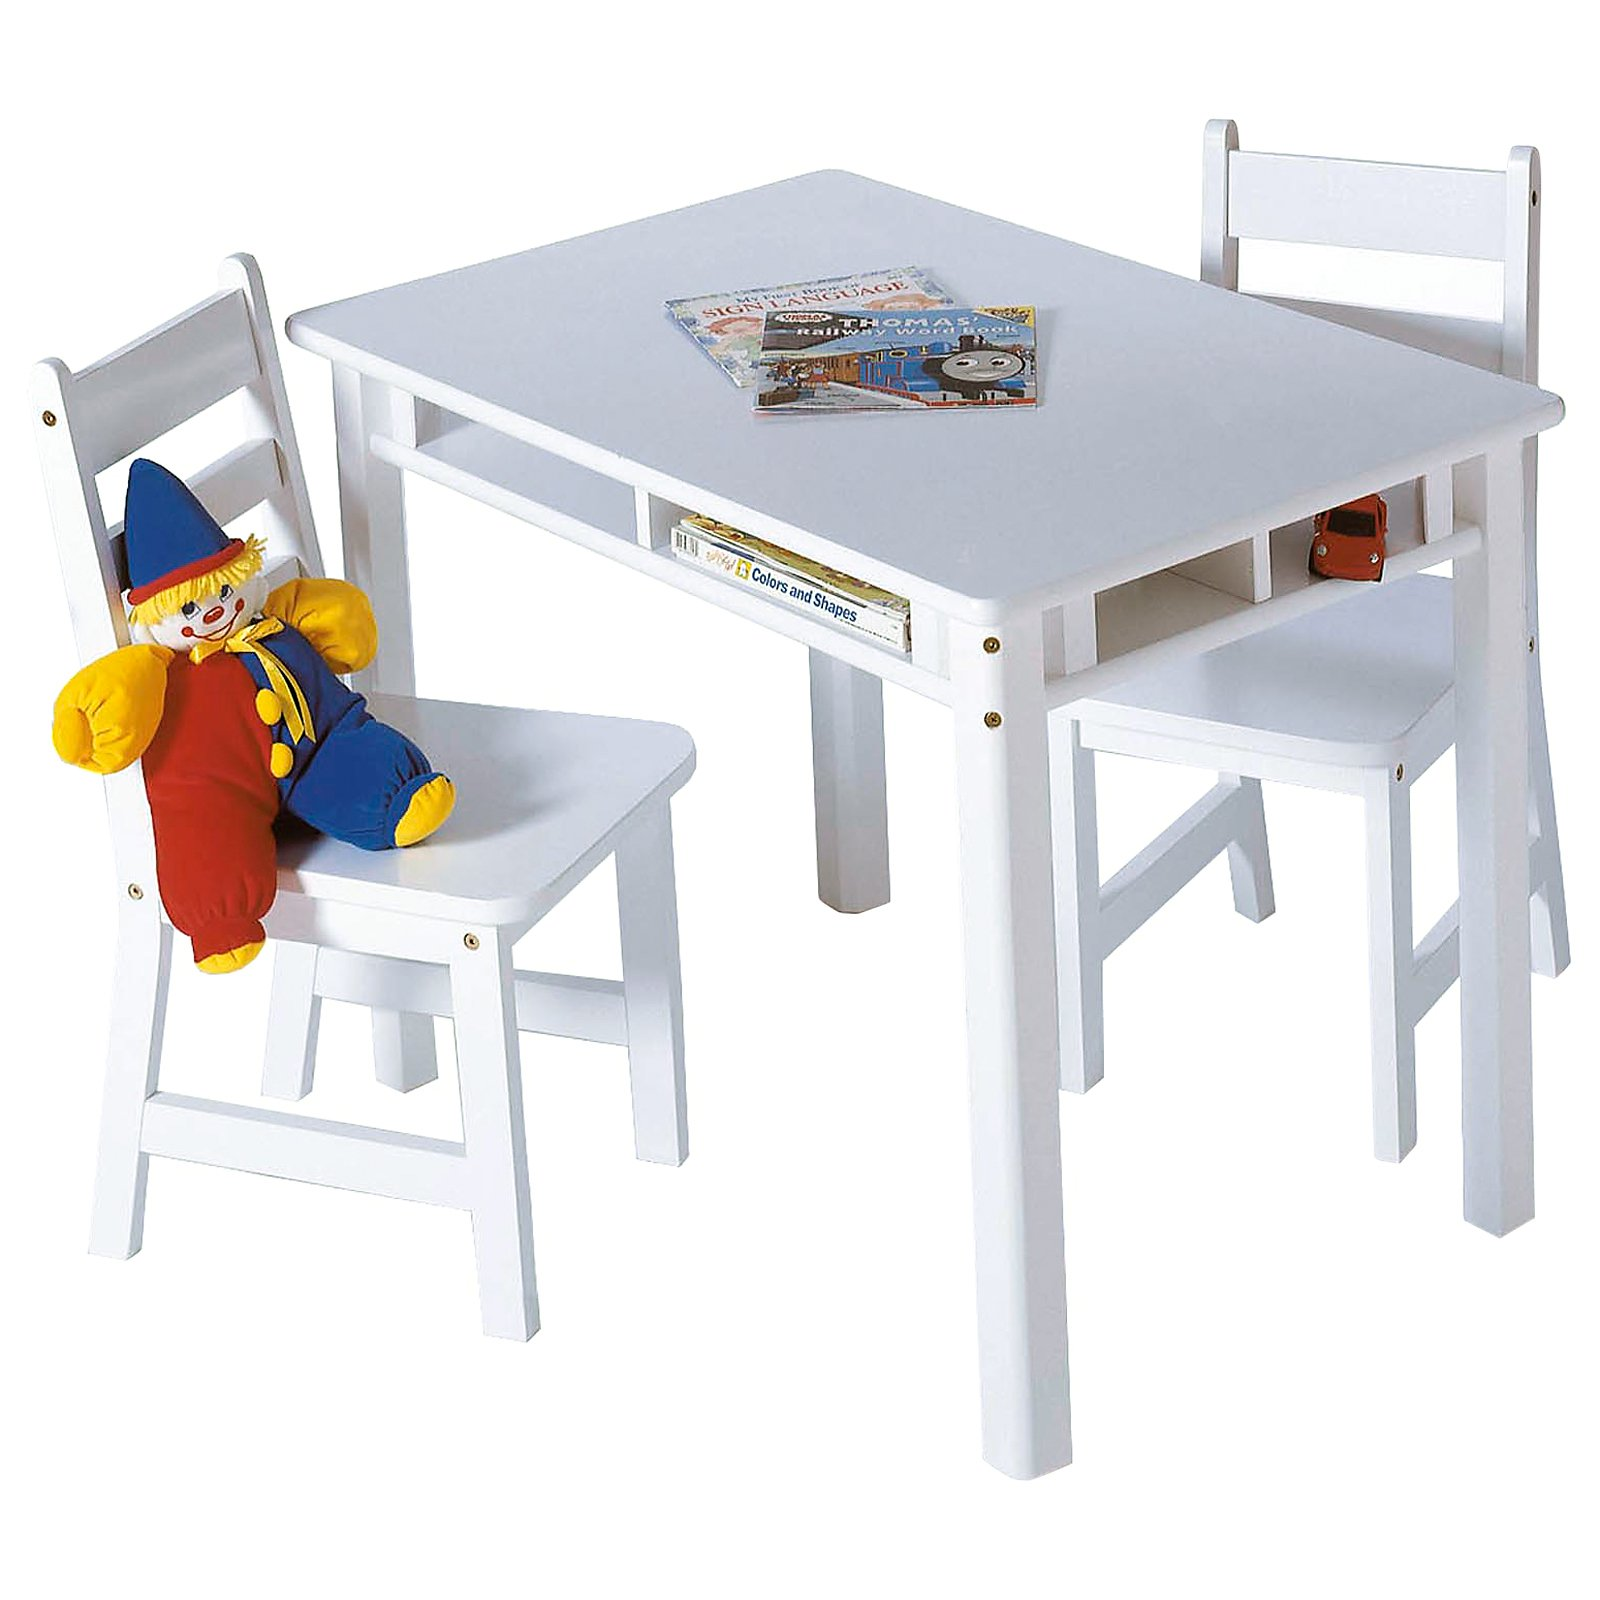 Lipper Childrens Rectangular Table And 2 Chairs Set With Shelves Multiple Colors